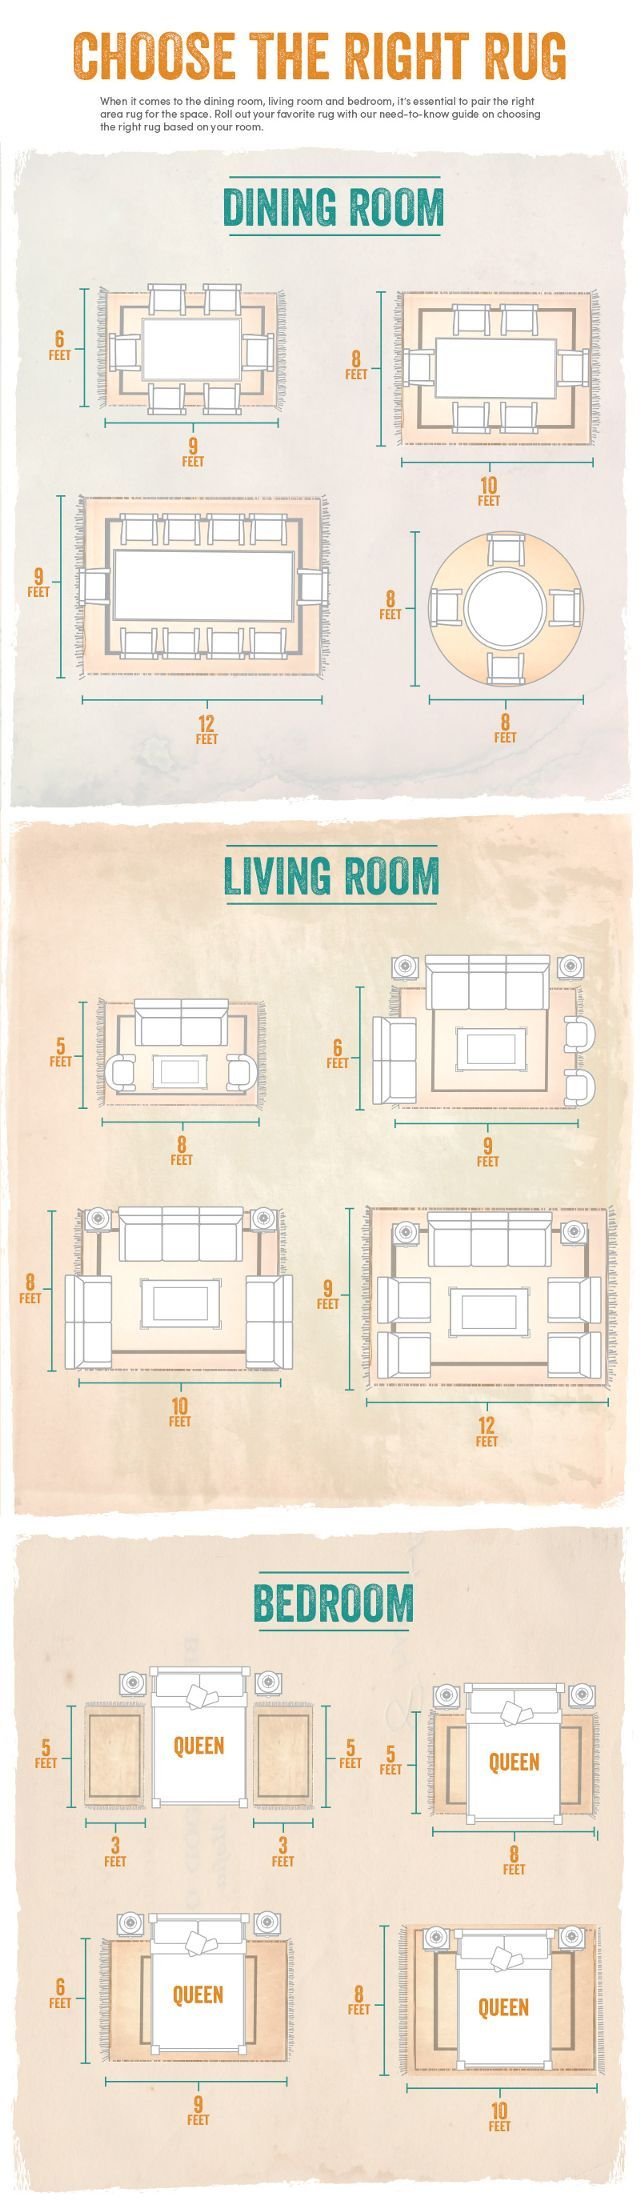 rug size and placement guide